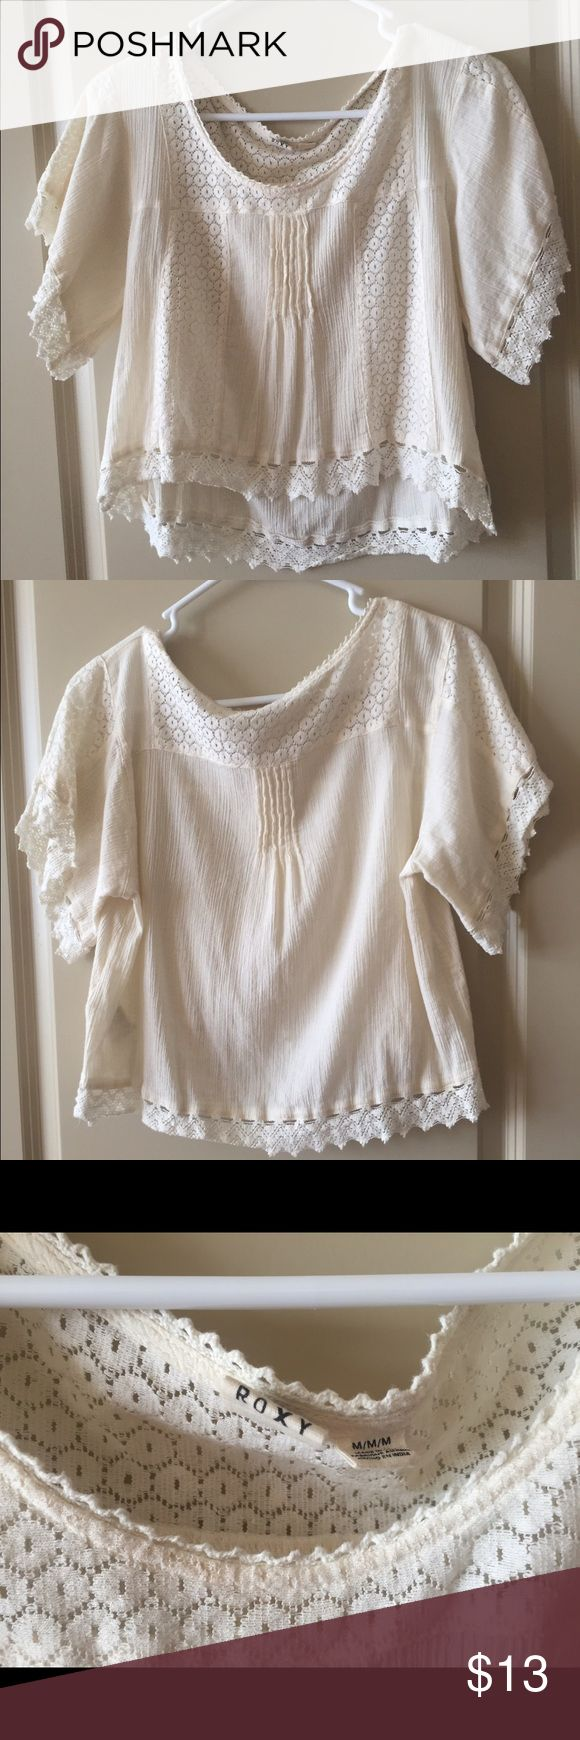 Peasant Crochet Crop Top Wears like a boxy crop top. Wide neckline. Very comfortable and cool in the summer. Looks great with high waisted shorts! Gently used Roxy Tops Crop Tops